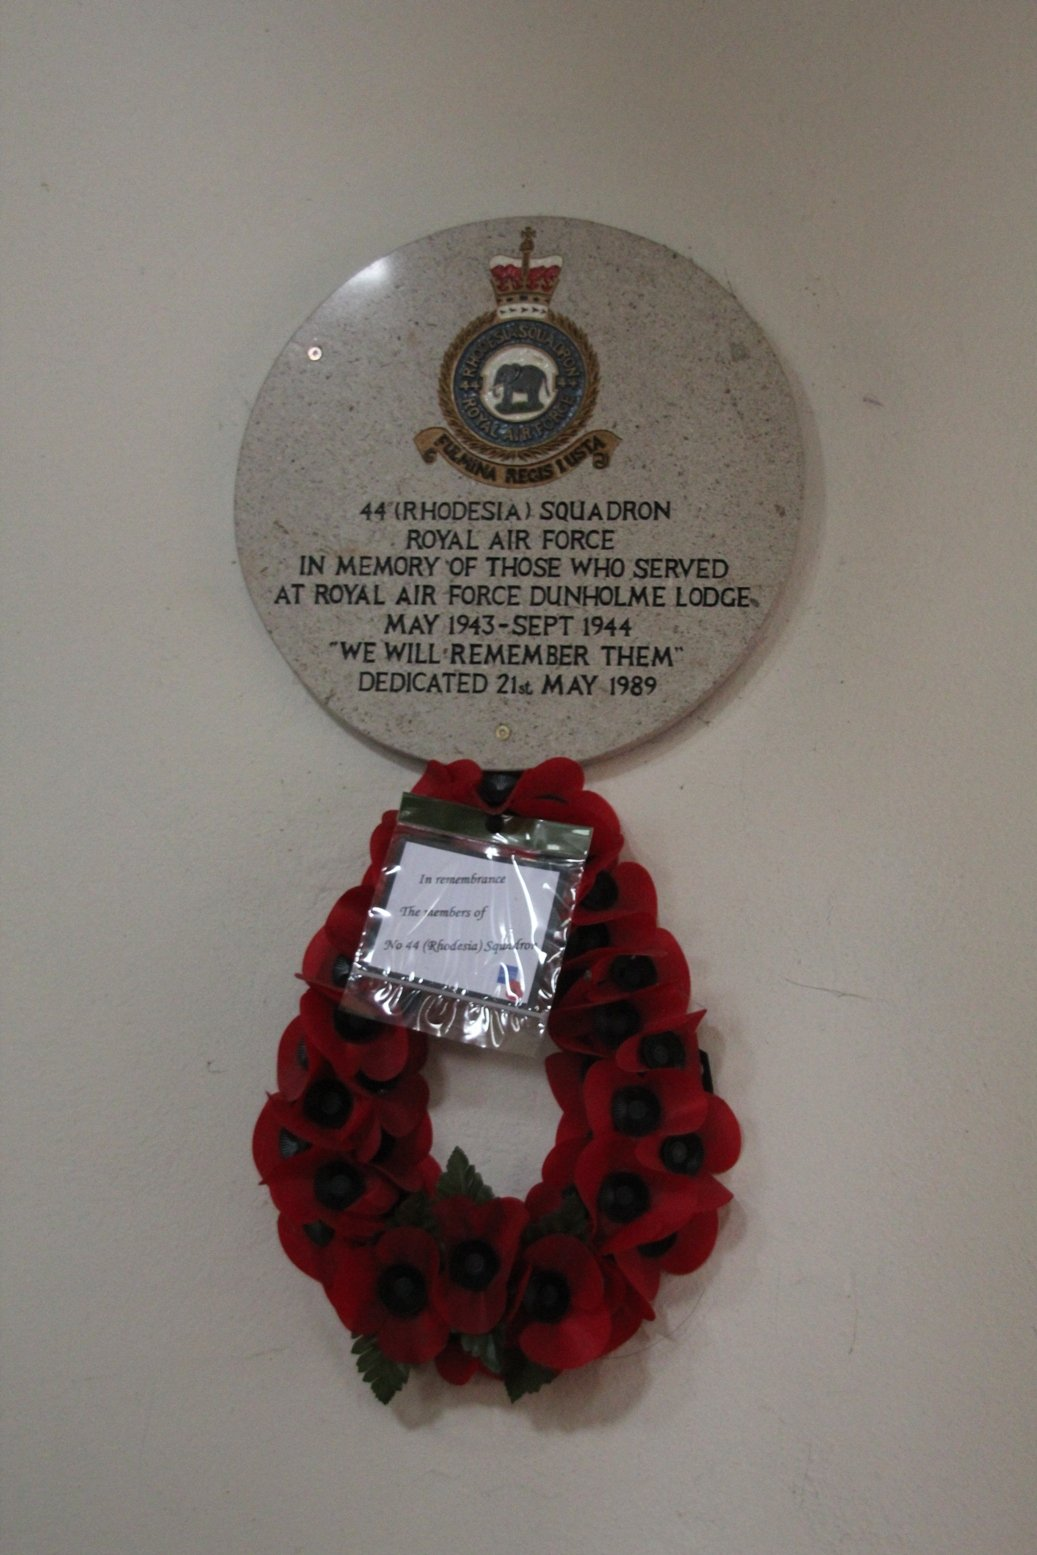 44 (Rhodesia) Squadron Memorial in St Chad's Church, Dunholme